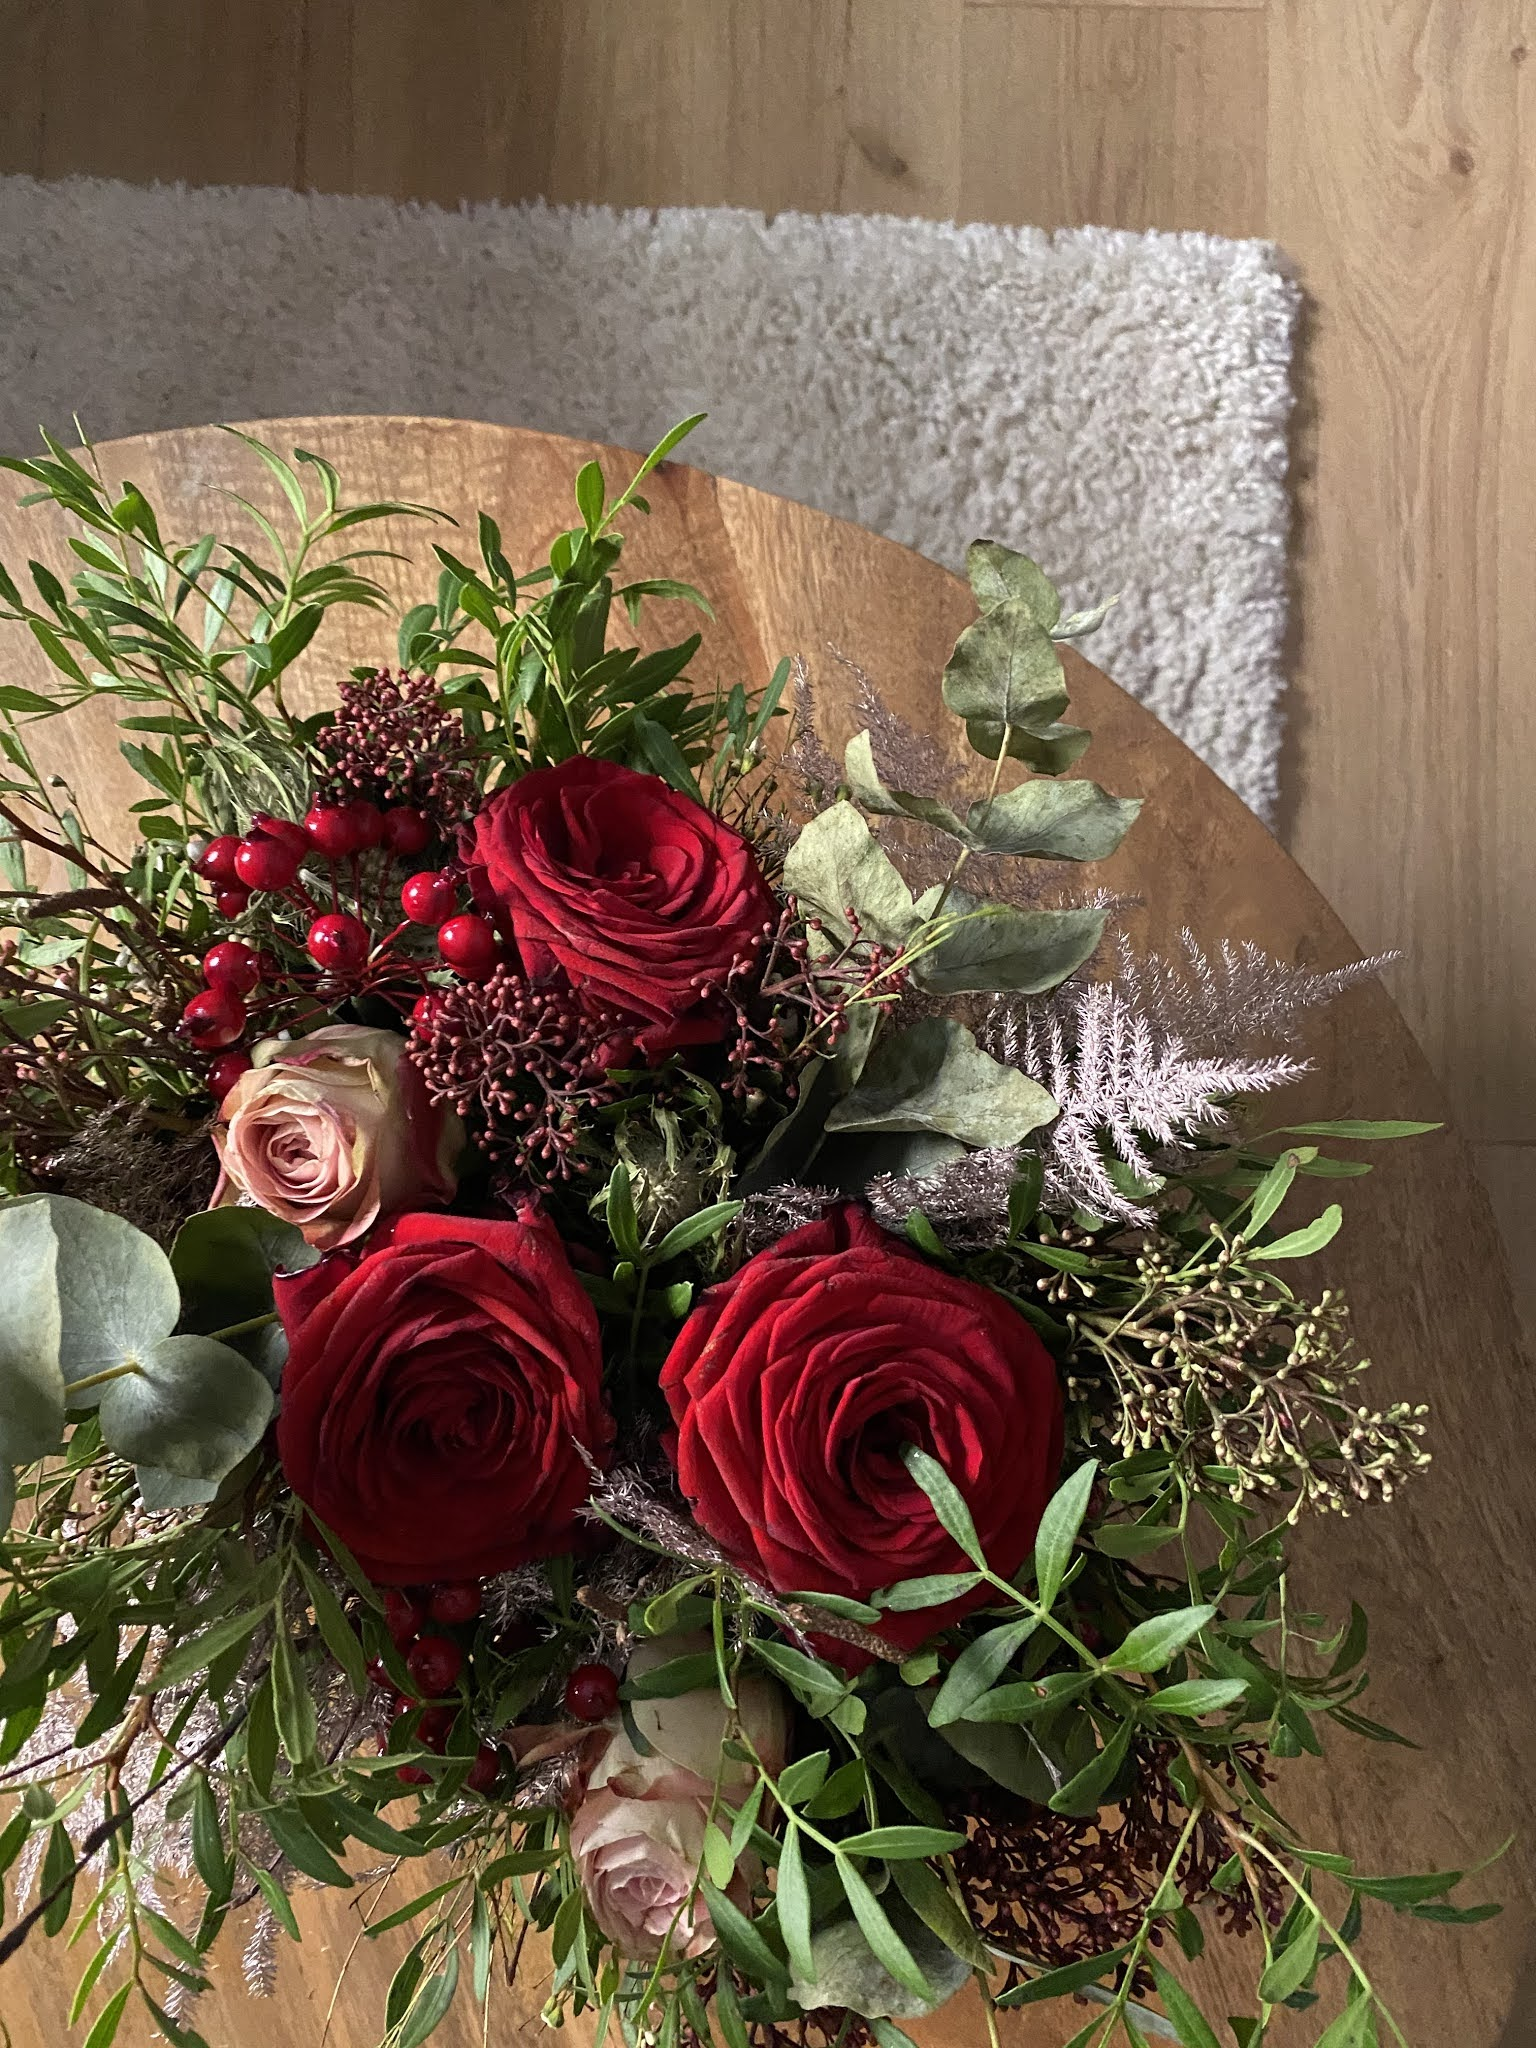 Christmas floral arrangement with red roses, foliage and red berries on a wooden table